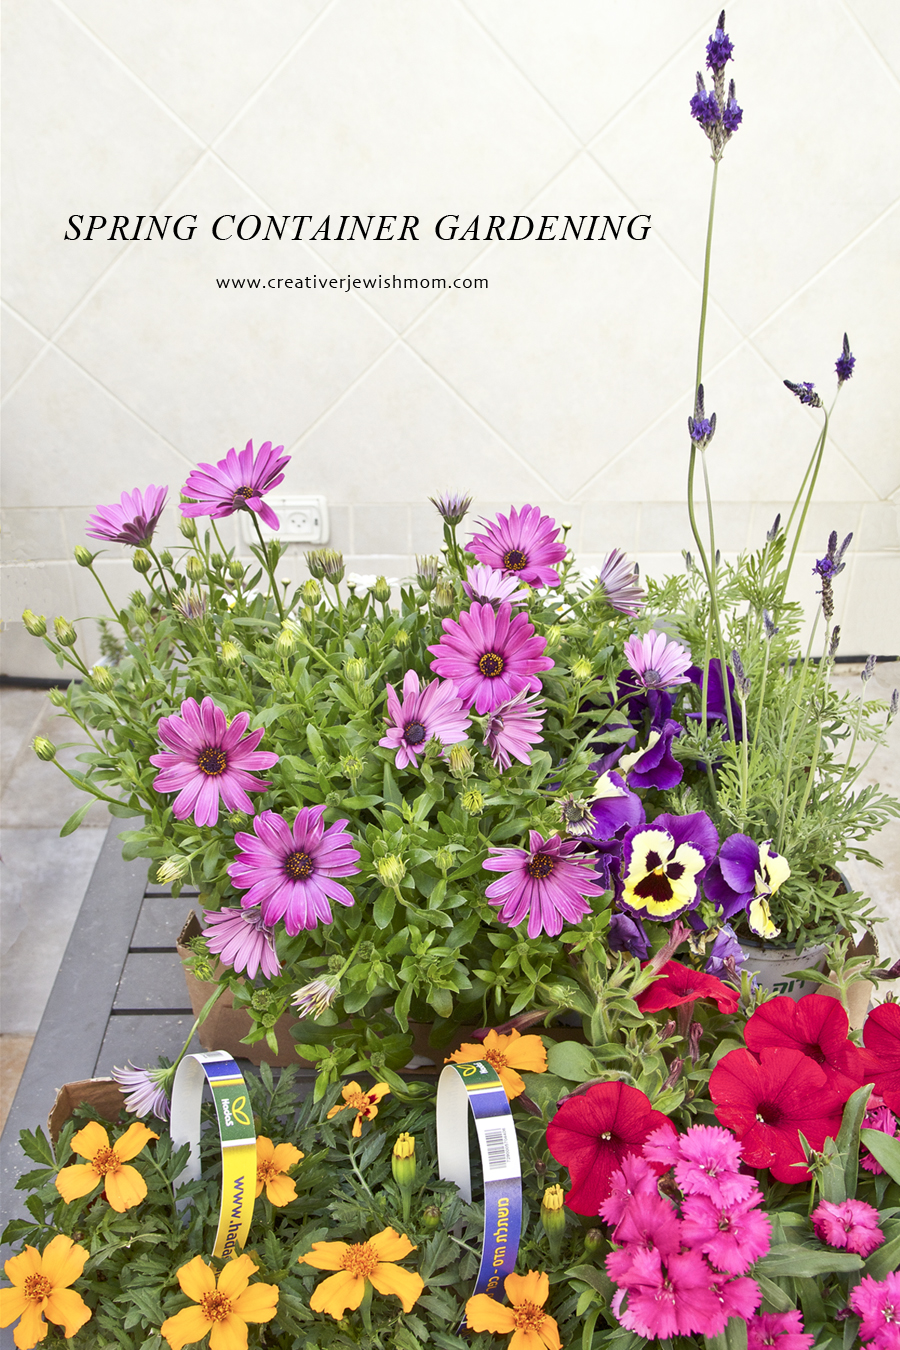 Spring Container Gardening Creative Jewish Mom